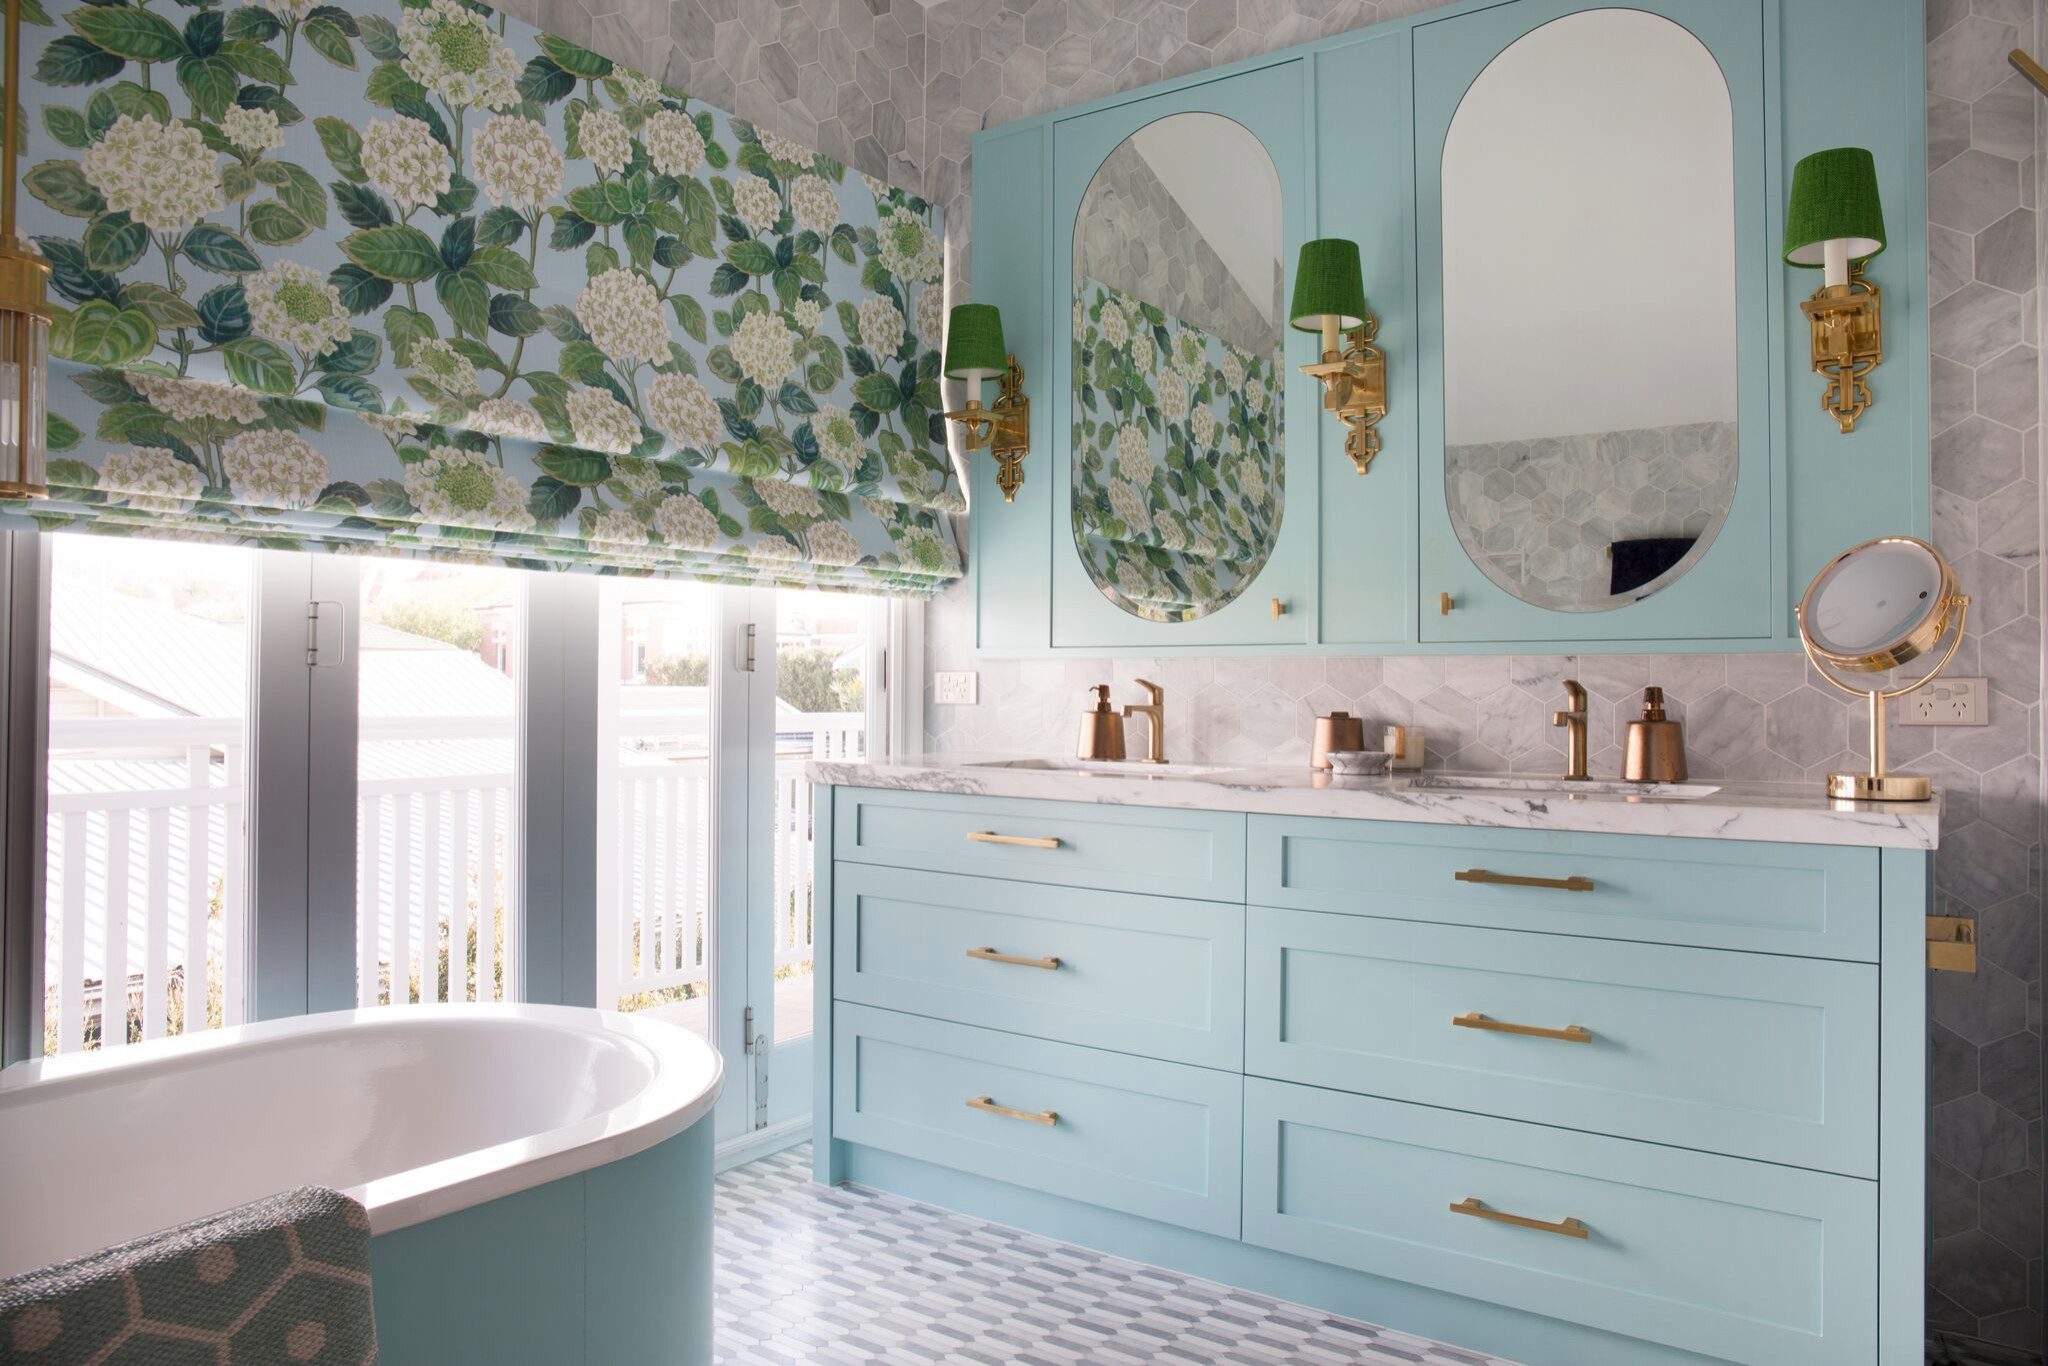 75 Beautiful Double Sink Bathroom Pictures Ideas November 2020 Houzz